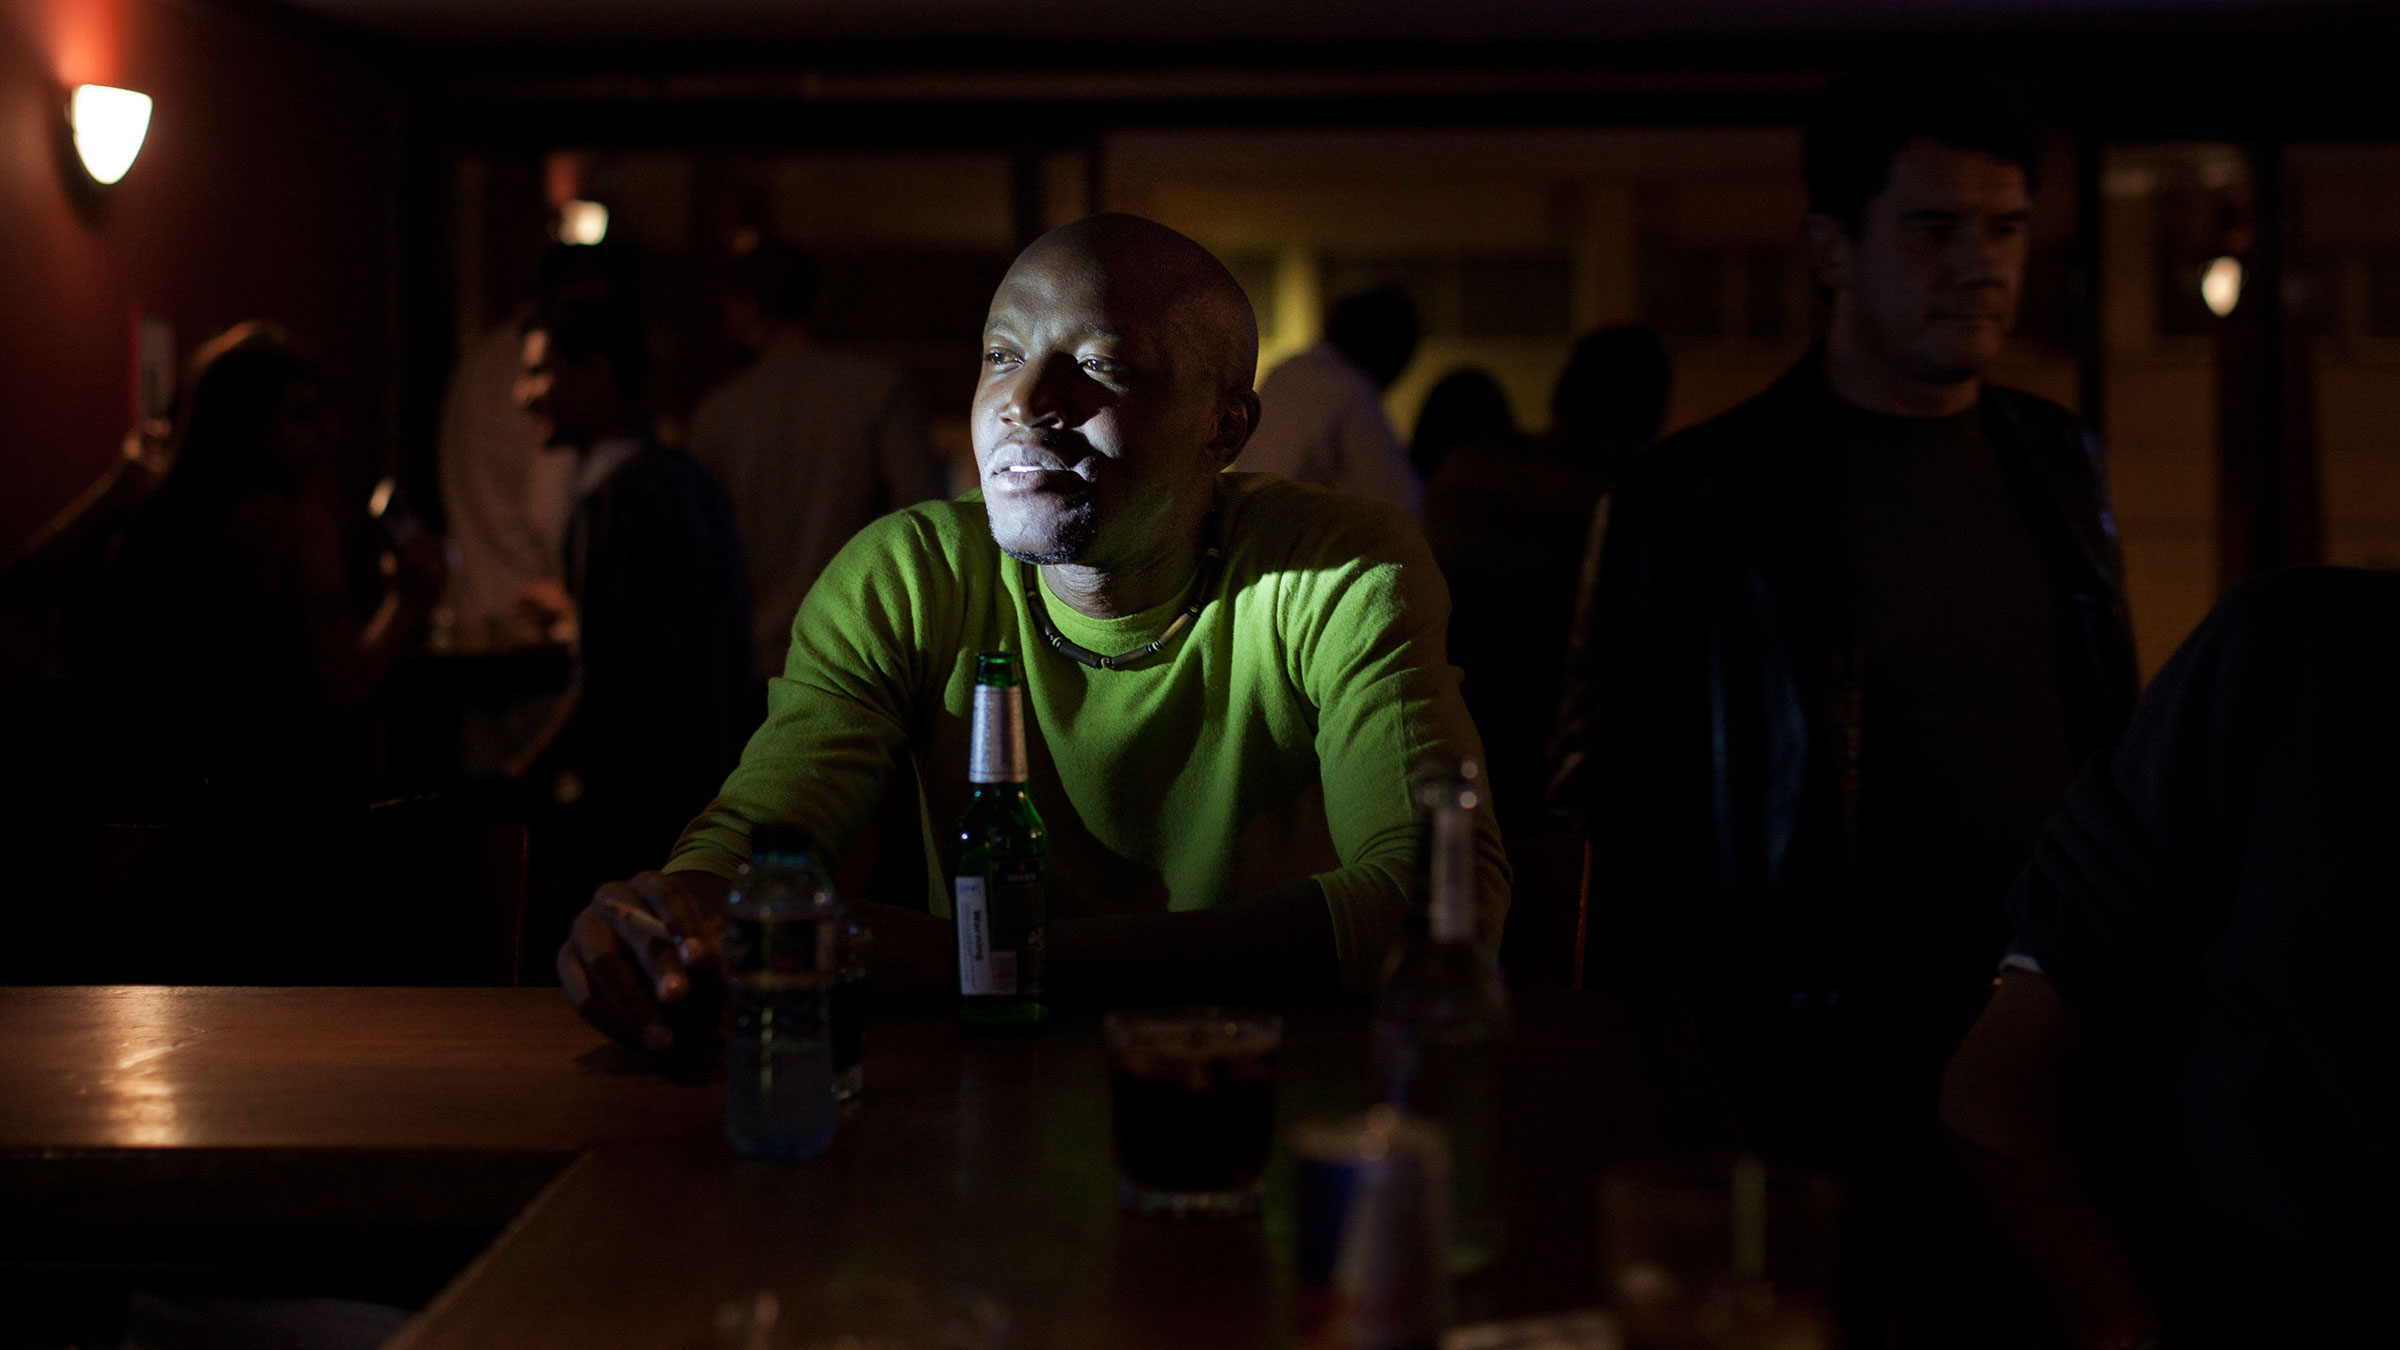 Luseno introduced the photographers to Nairobi's nightlife